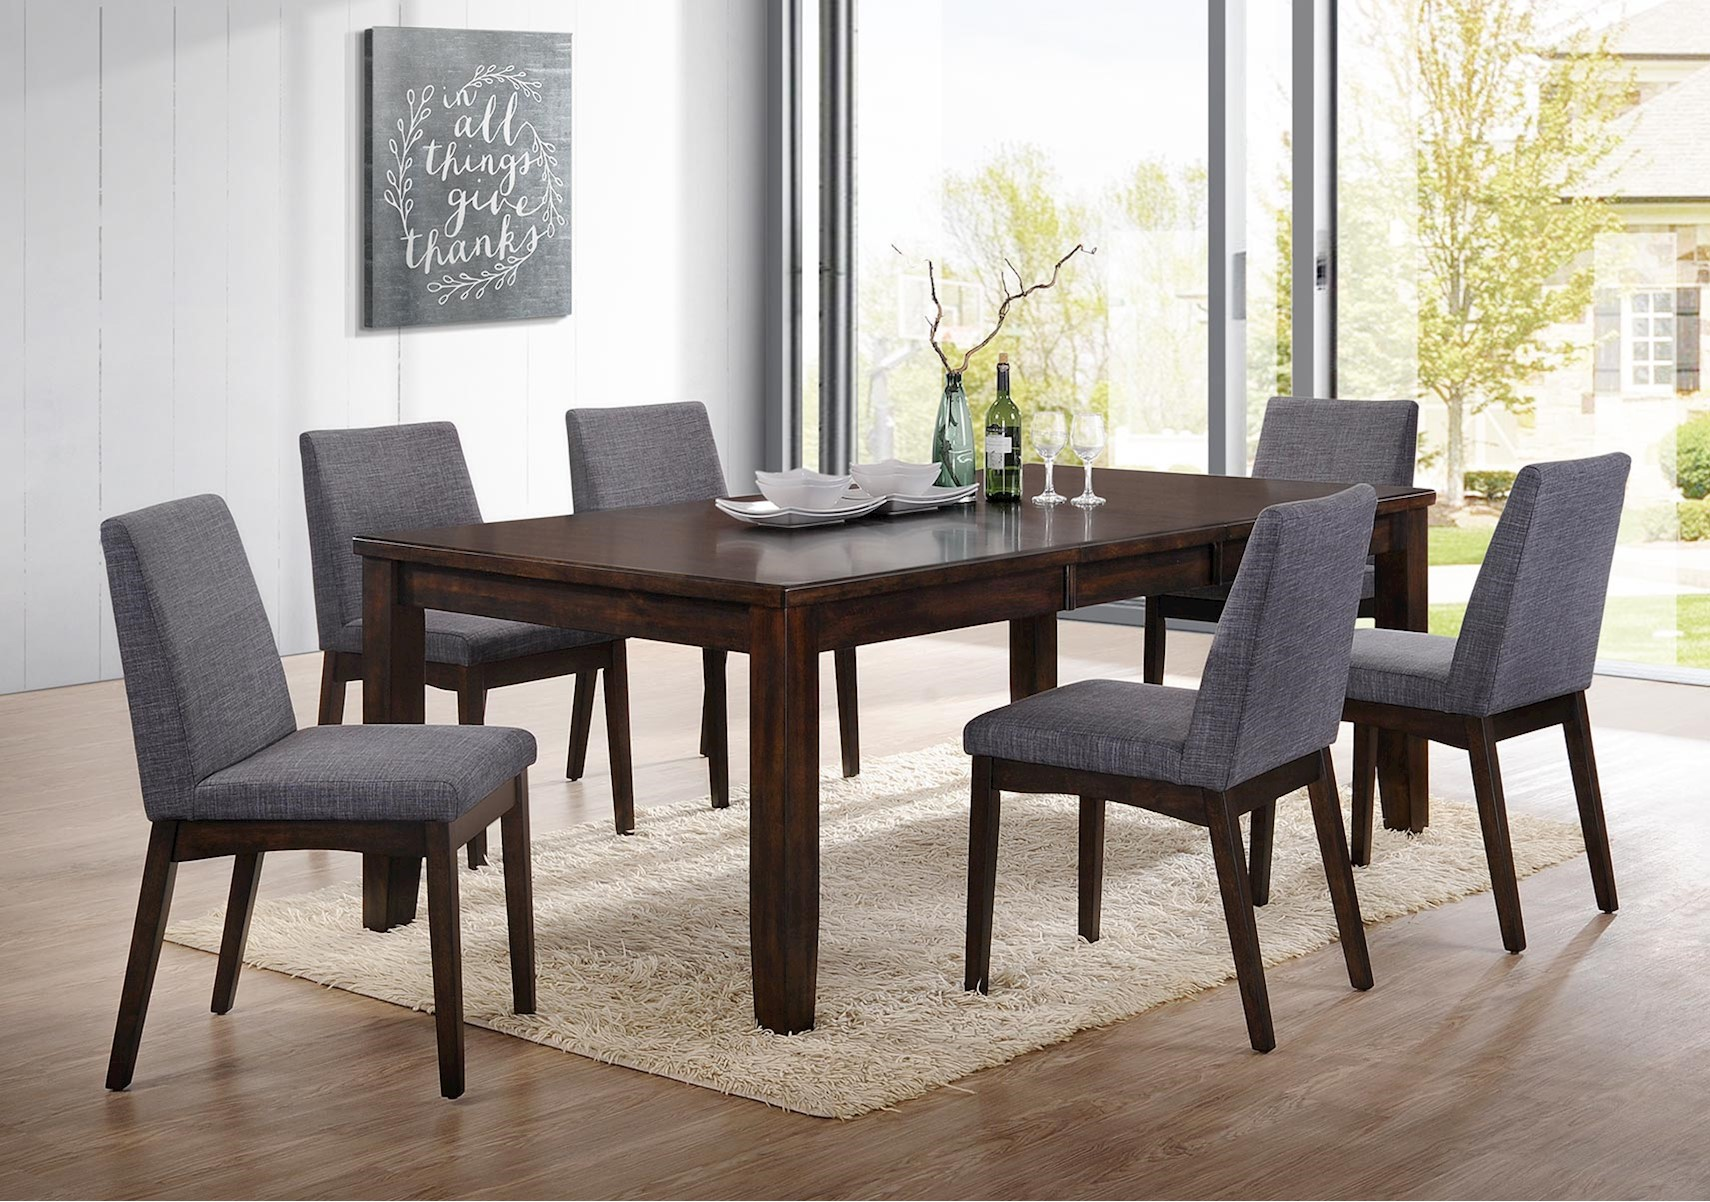 Lacks dining room sets piper 7 pc dining set dzzzfo